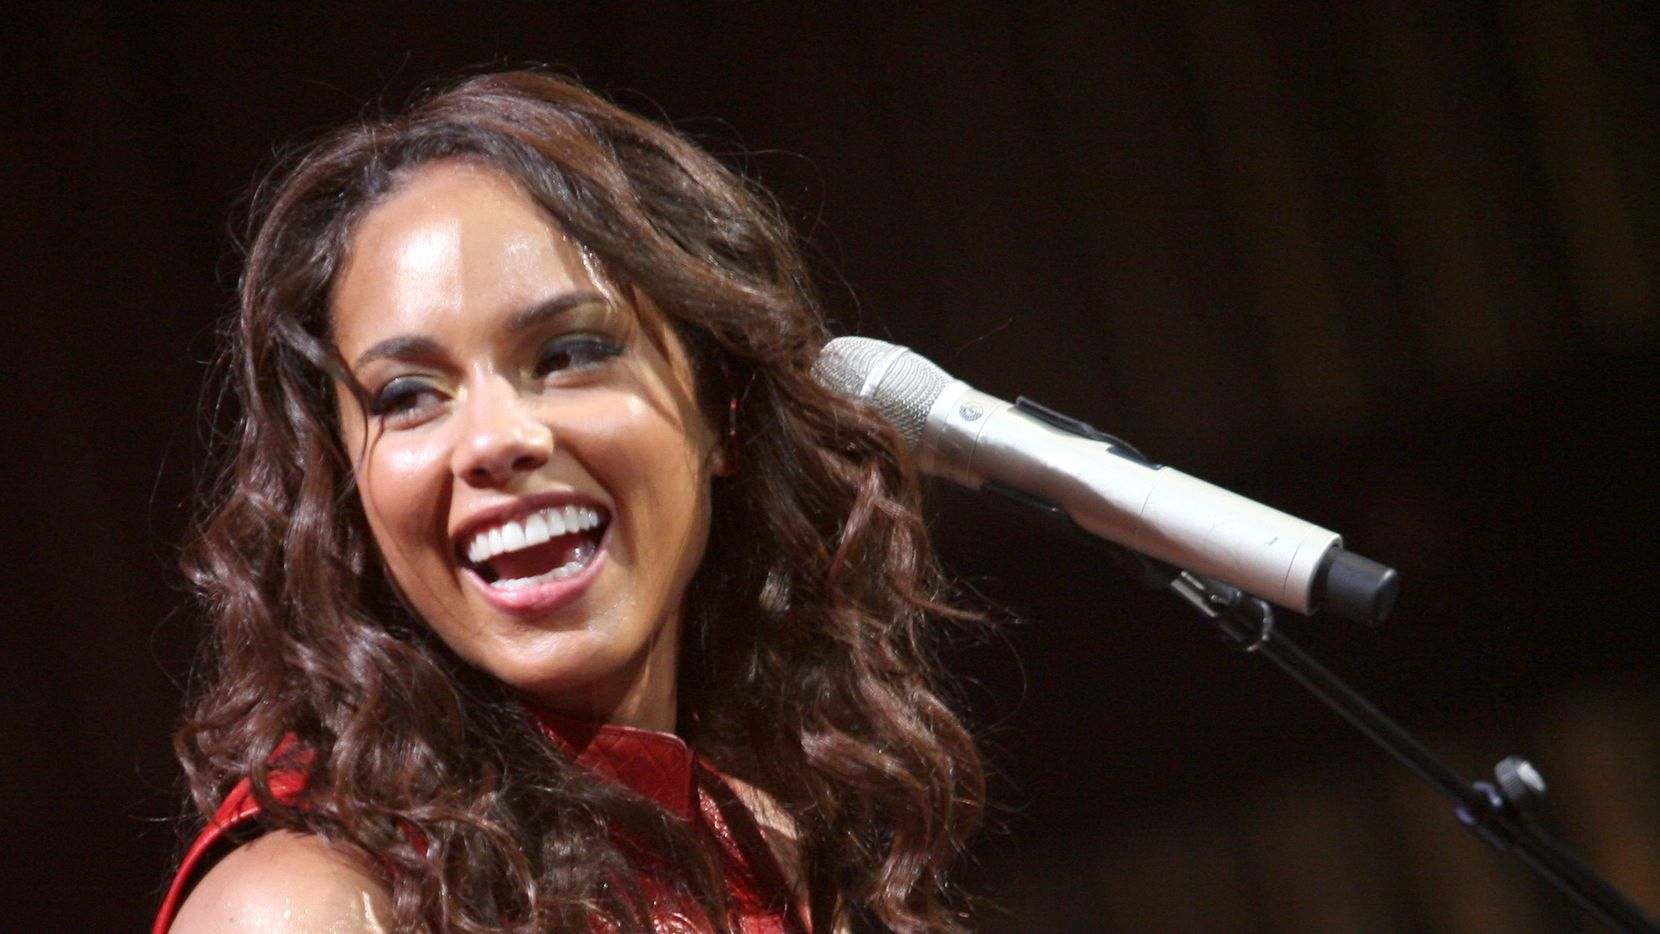 Alicia Keys has performed in North Texas a half dozen times, including this show at Nokia Theater in Grand Prairie on May 14, 2007.